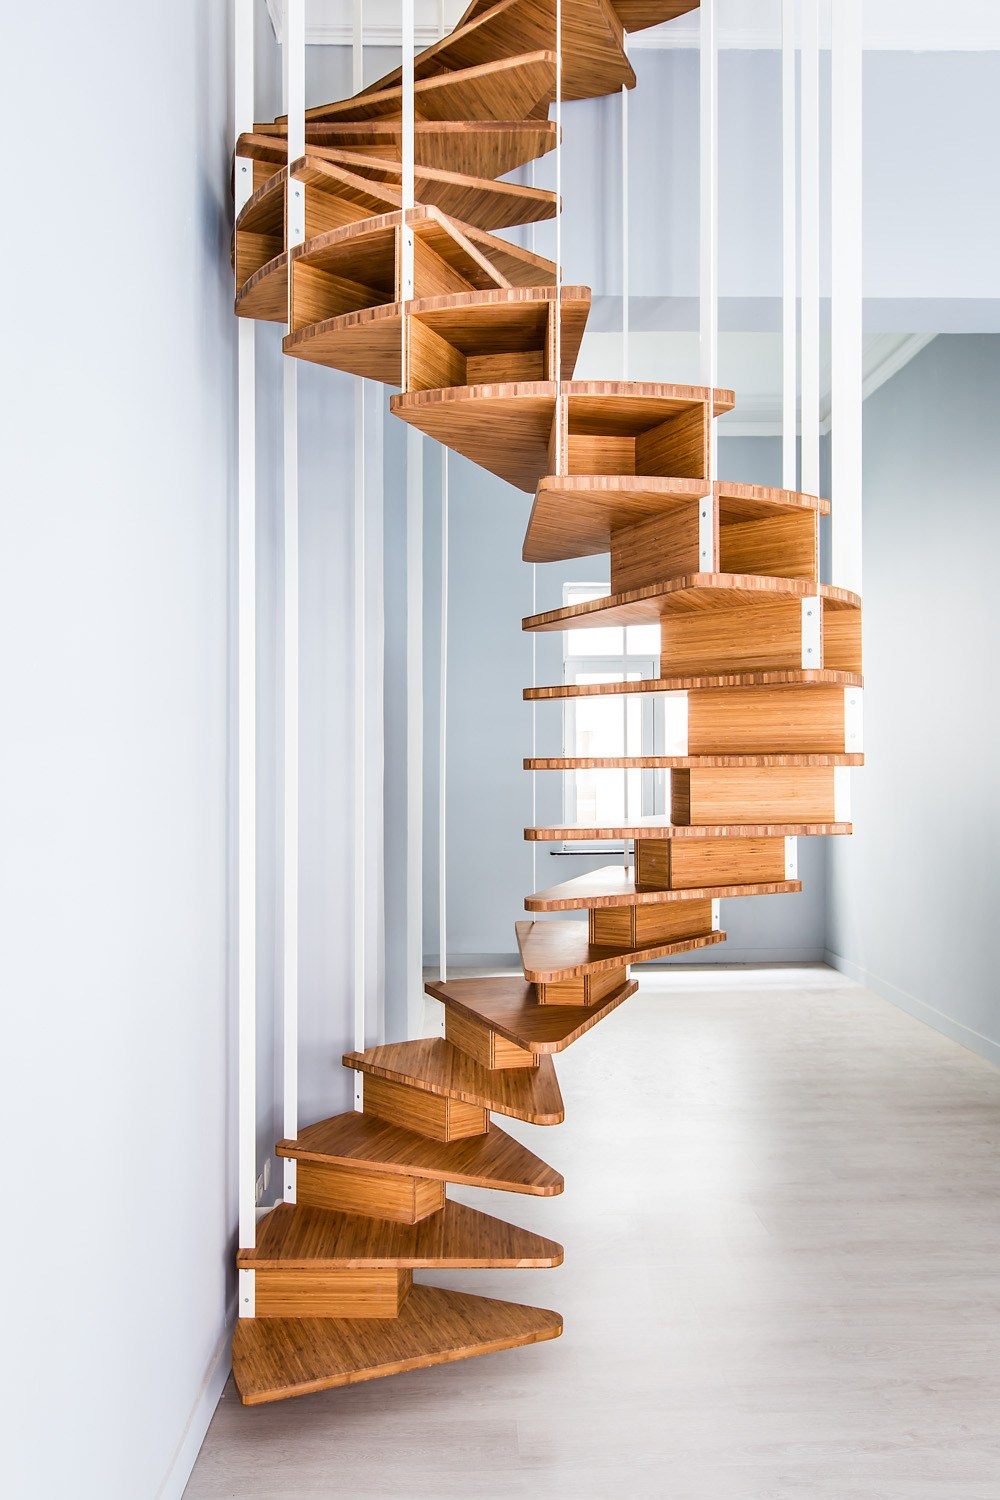 How to build a wooden spiral staircase my staircase gallery for Spiral stair design